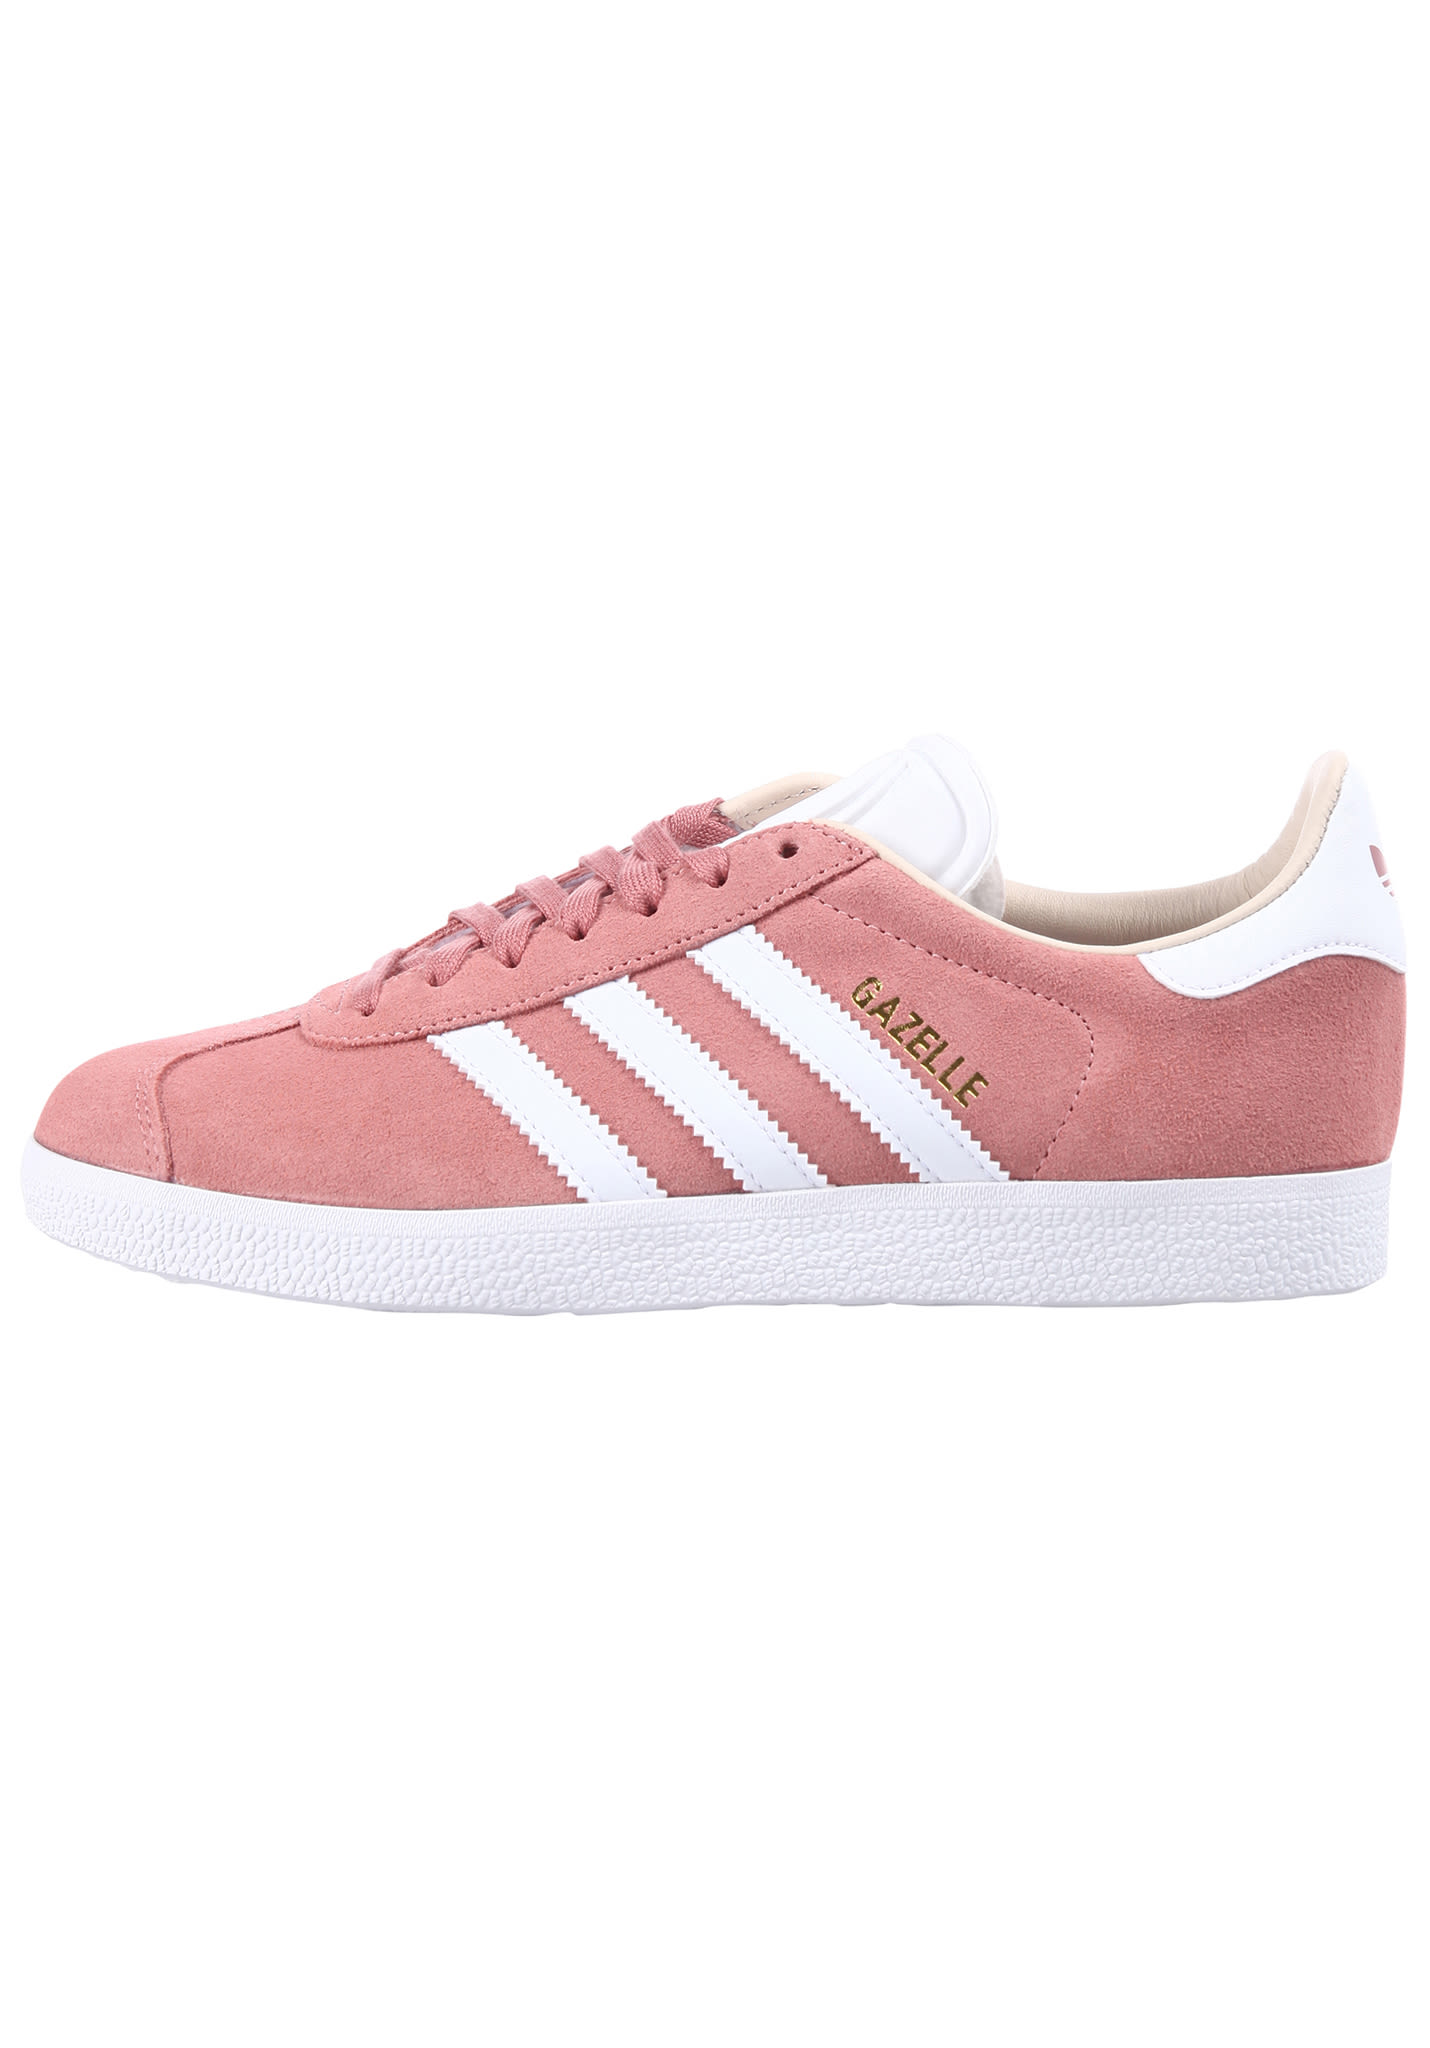 27d085821ce ADIDAS ORIGINALS Gazelle - Sneakers for Women - Pink - Planet Sports